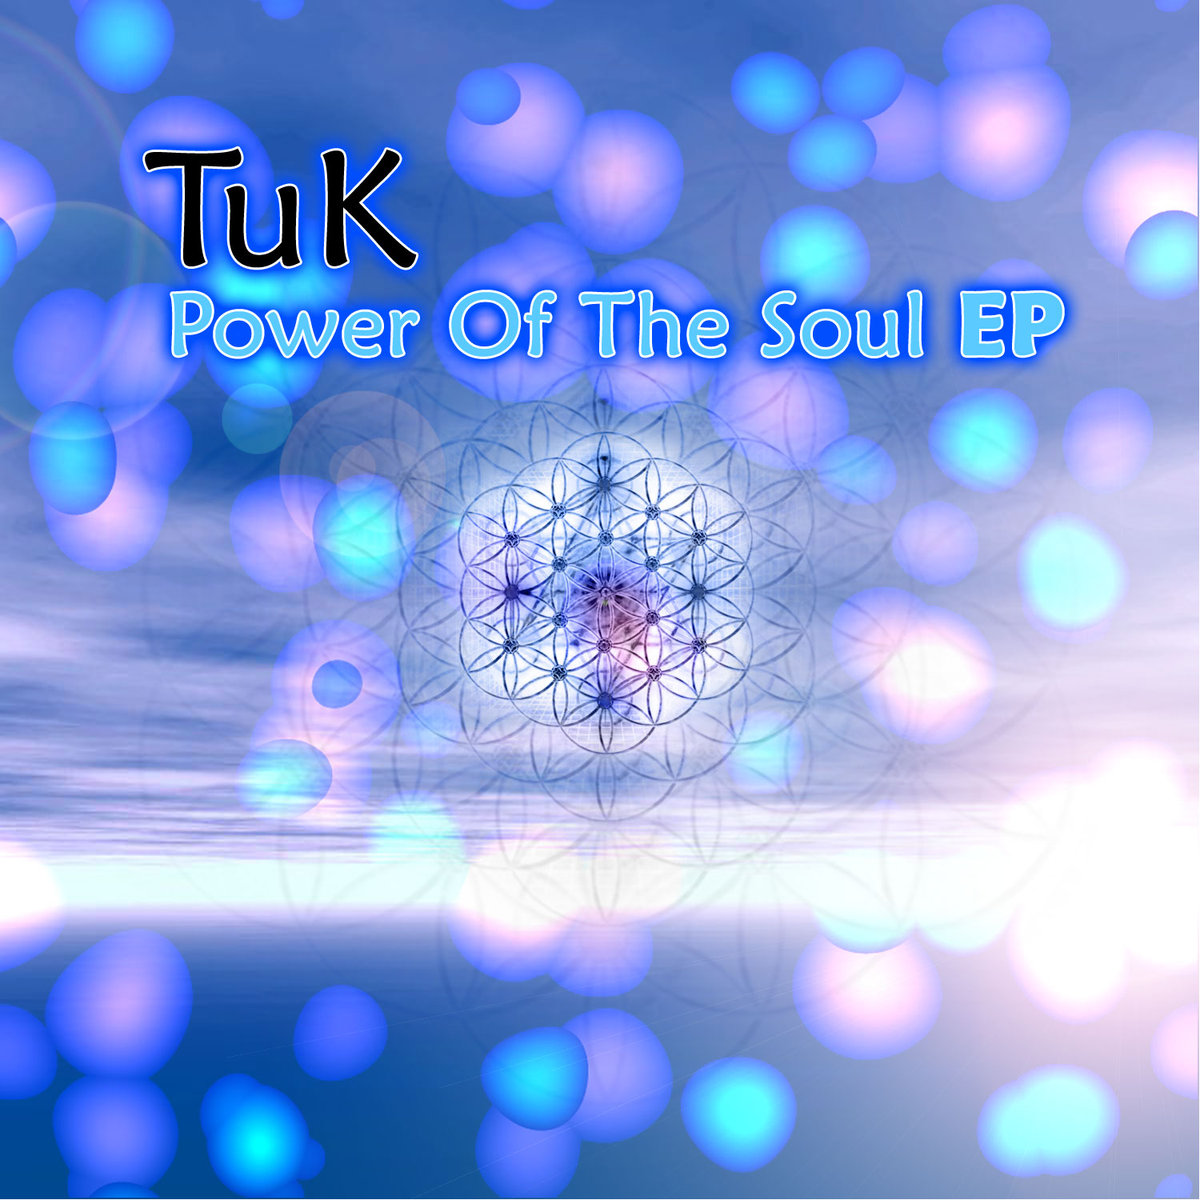 TuK - Power of the Soul @ 'Power of the Soul' album (electronic, goa)